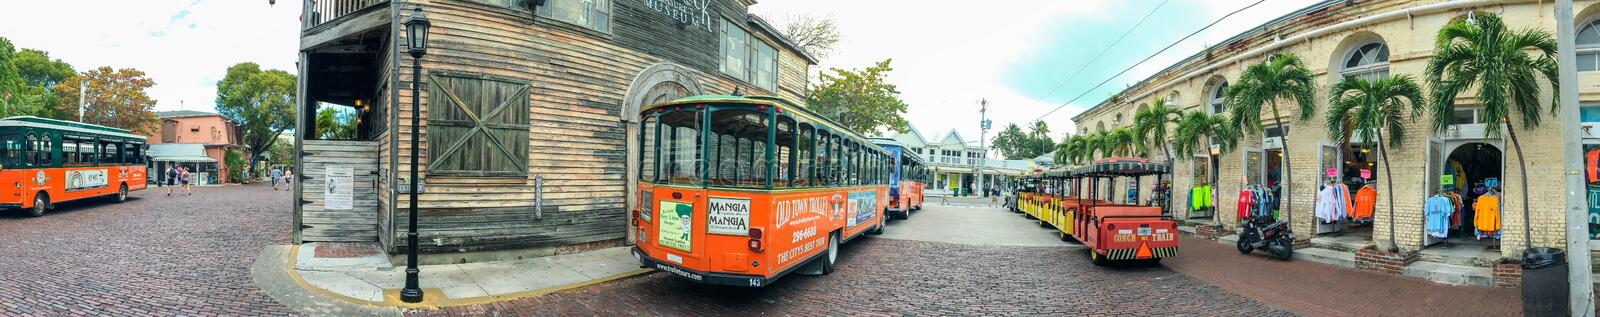 KEY WEST, FL - FEBRUARY 2016: Old Trolleys along city streets, p. Anoramic view. Key West is a major tourist destination in Florida stock photo